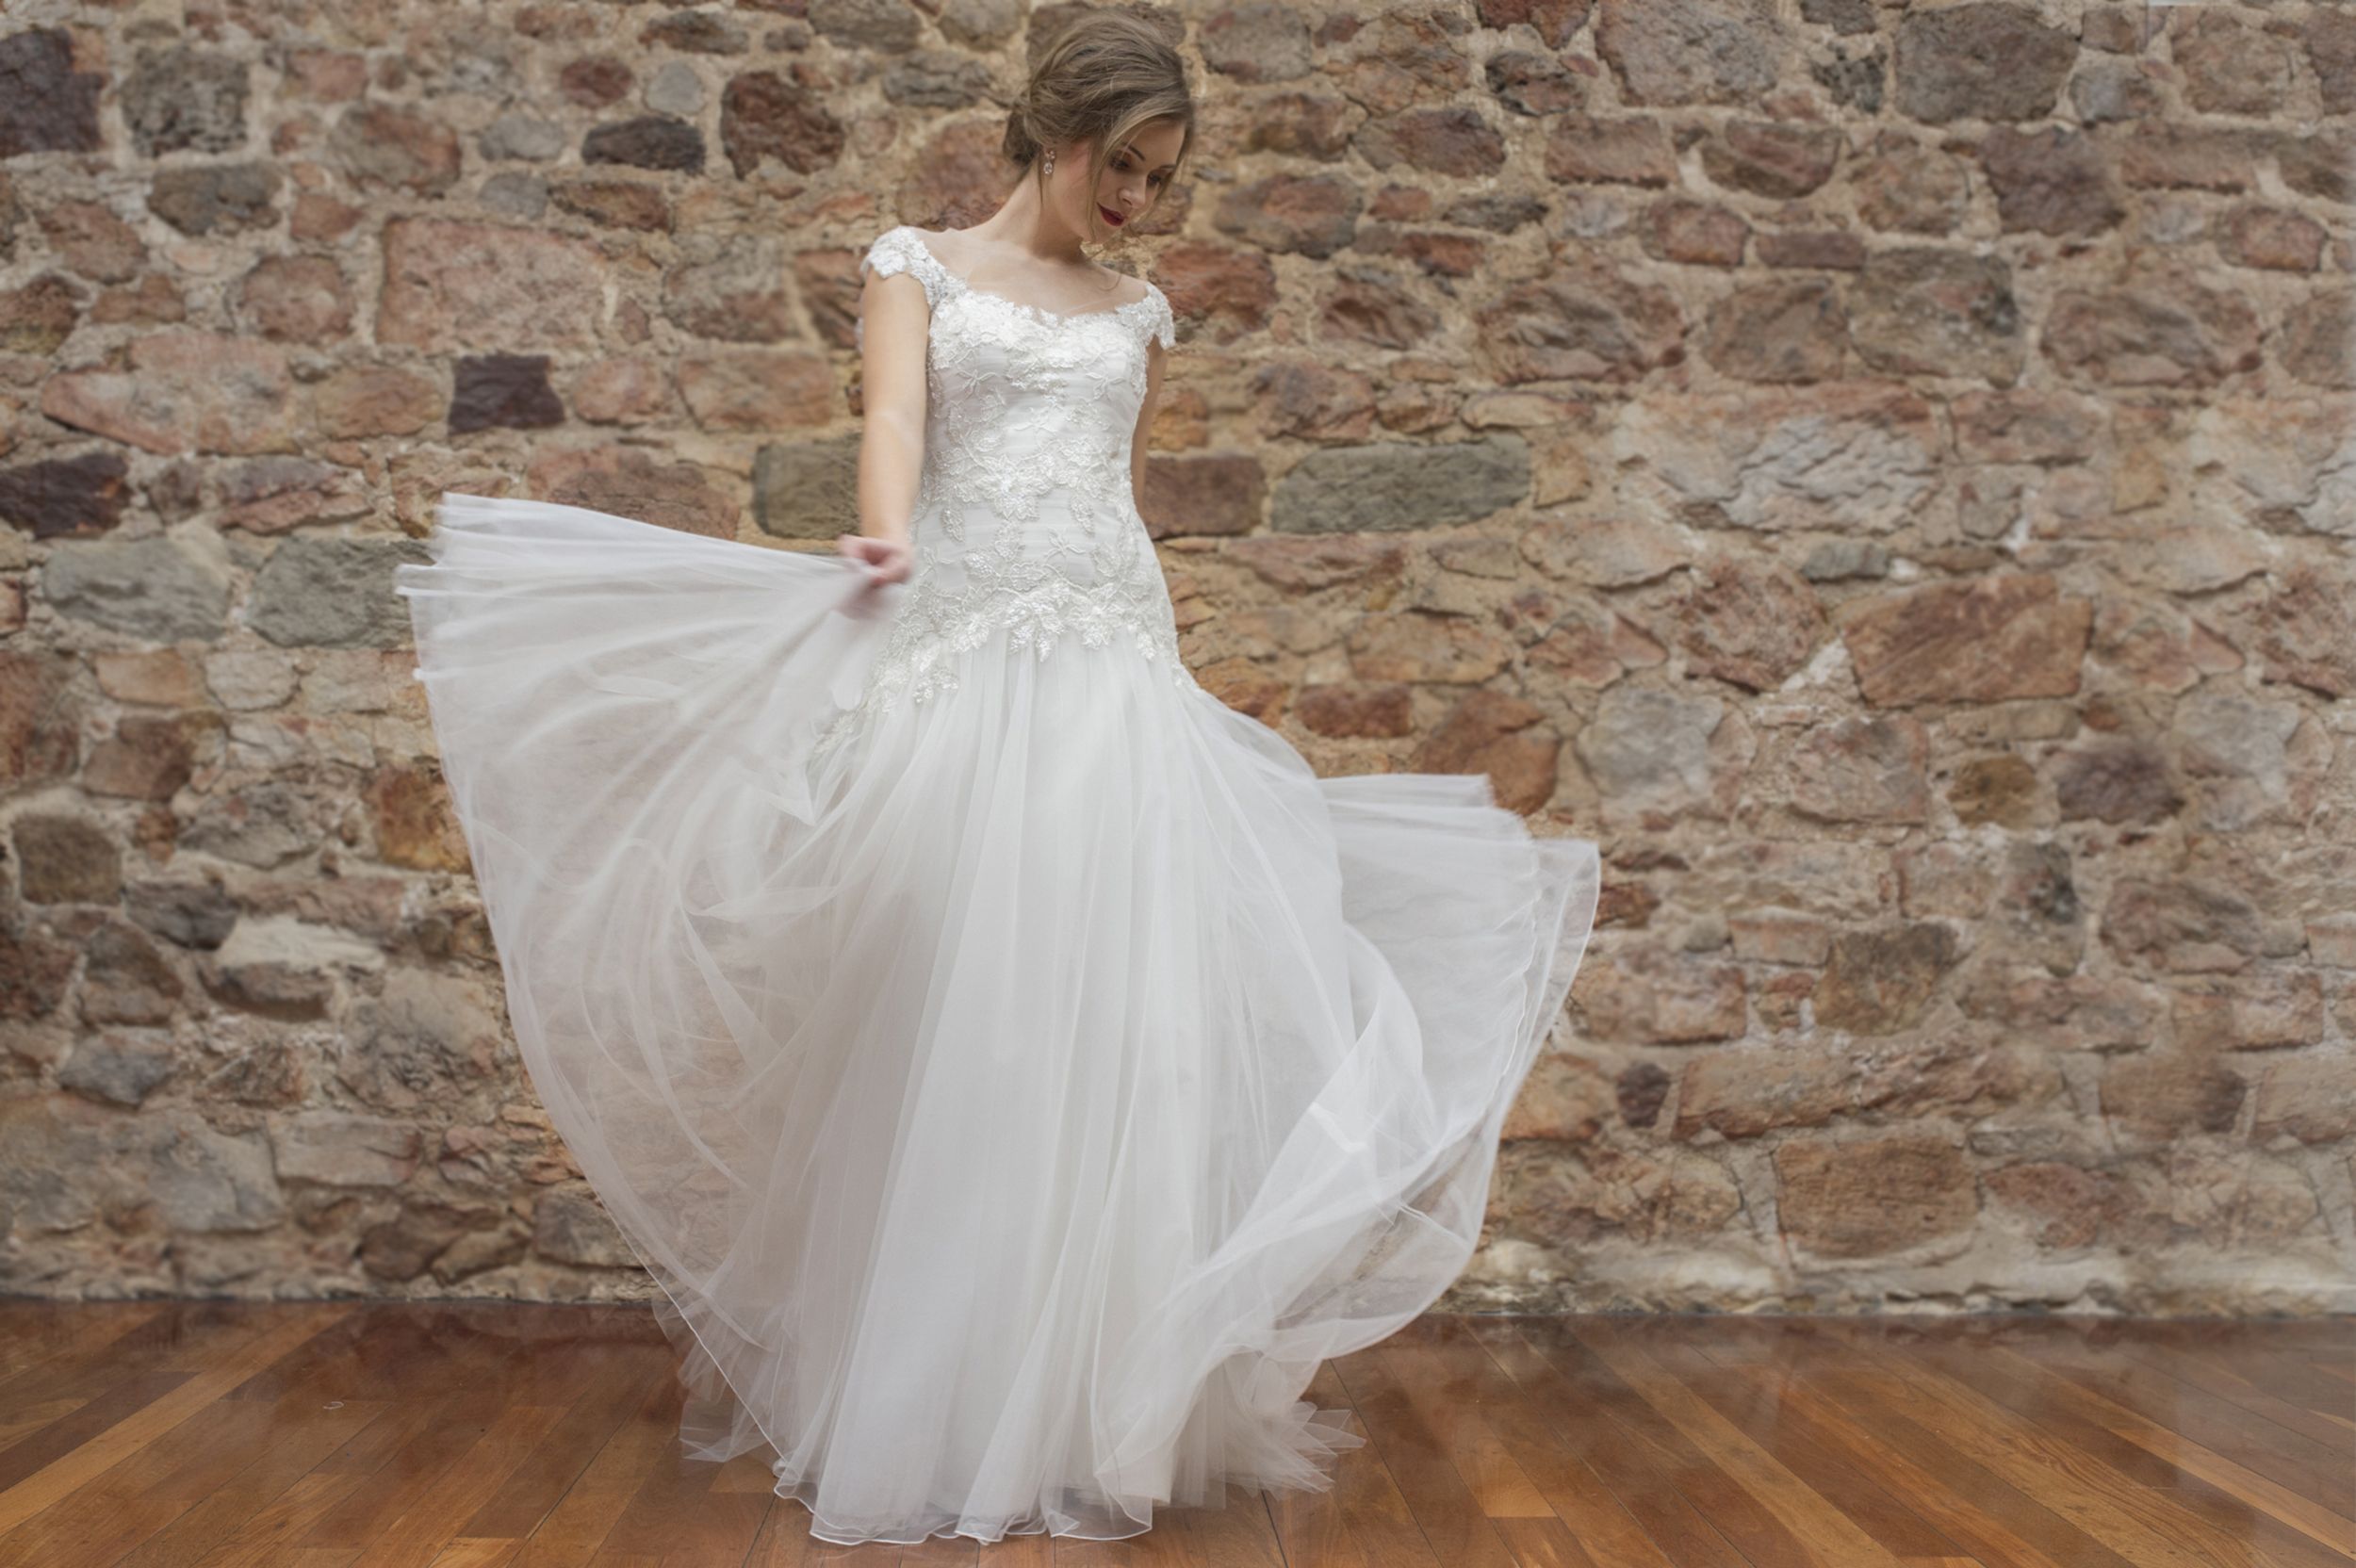 The 'Maggie' gown features the most dazzling and detailed lace you can imagine. The longer line bodice highlights the lace perfectly.   Caleche is located in Adelaide, South Australia.